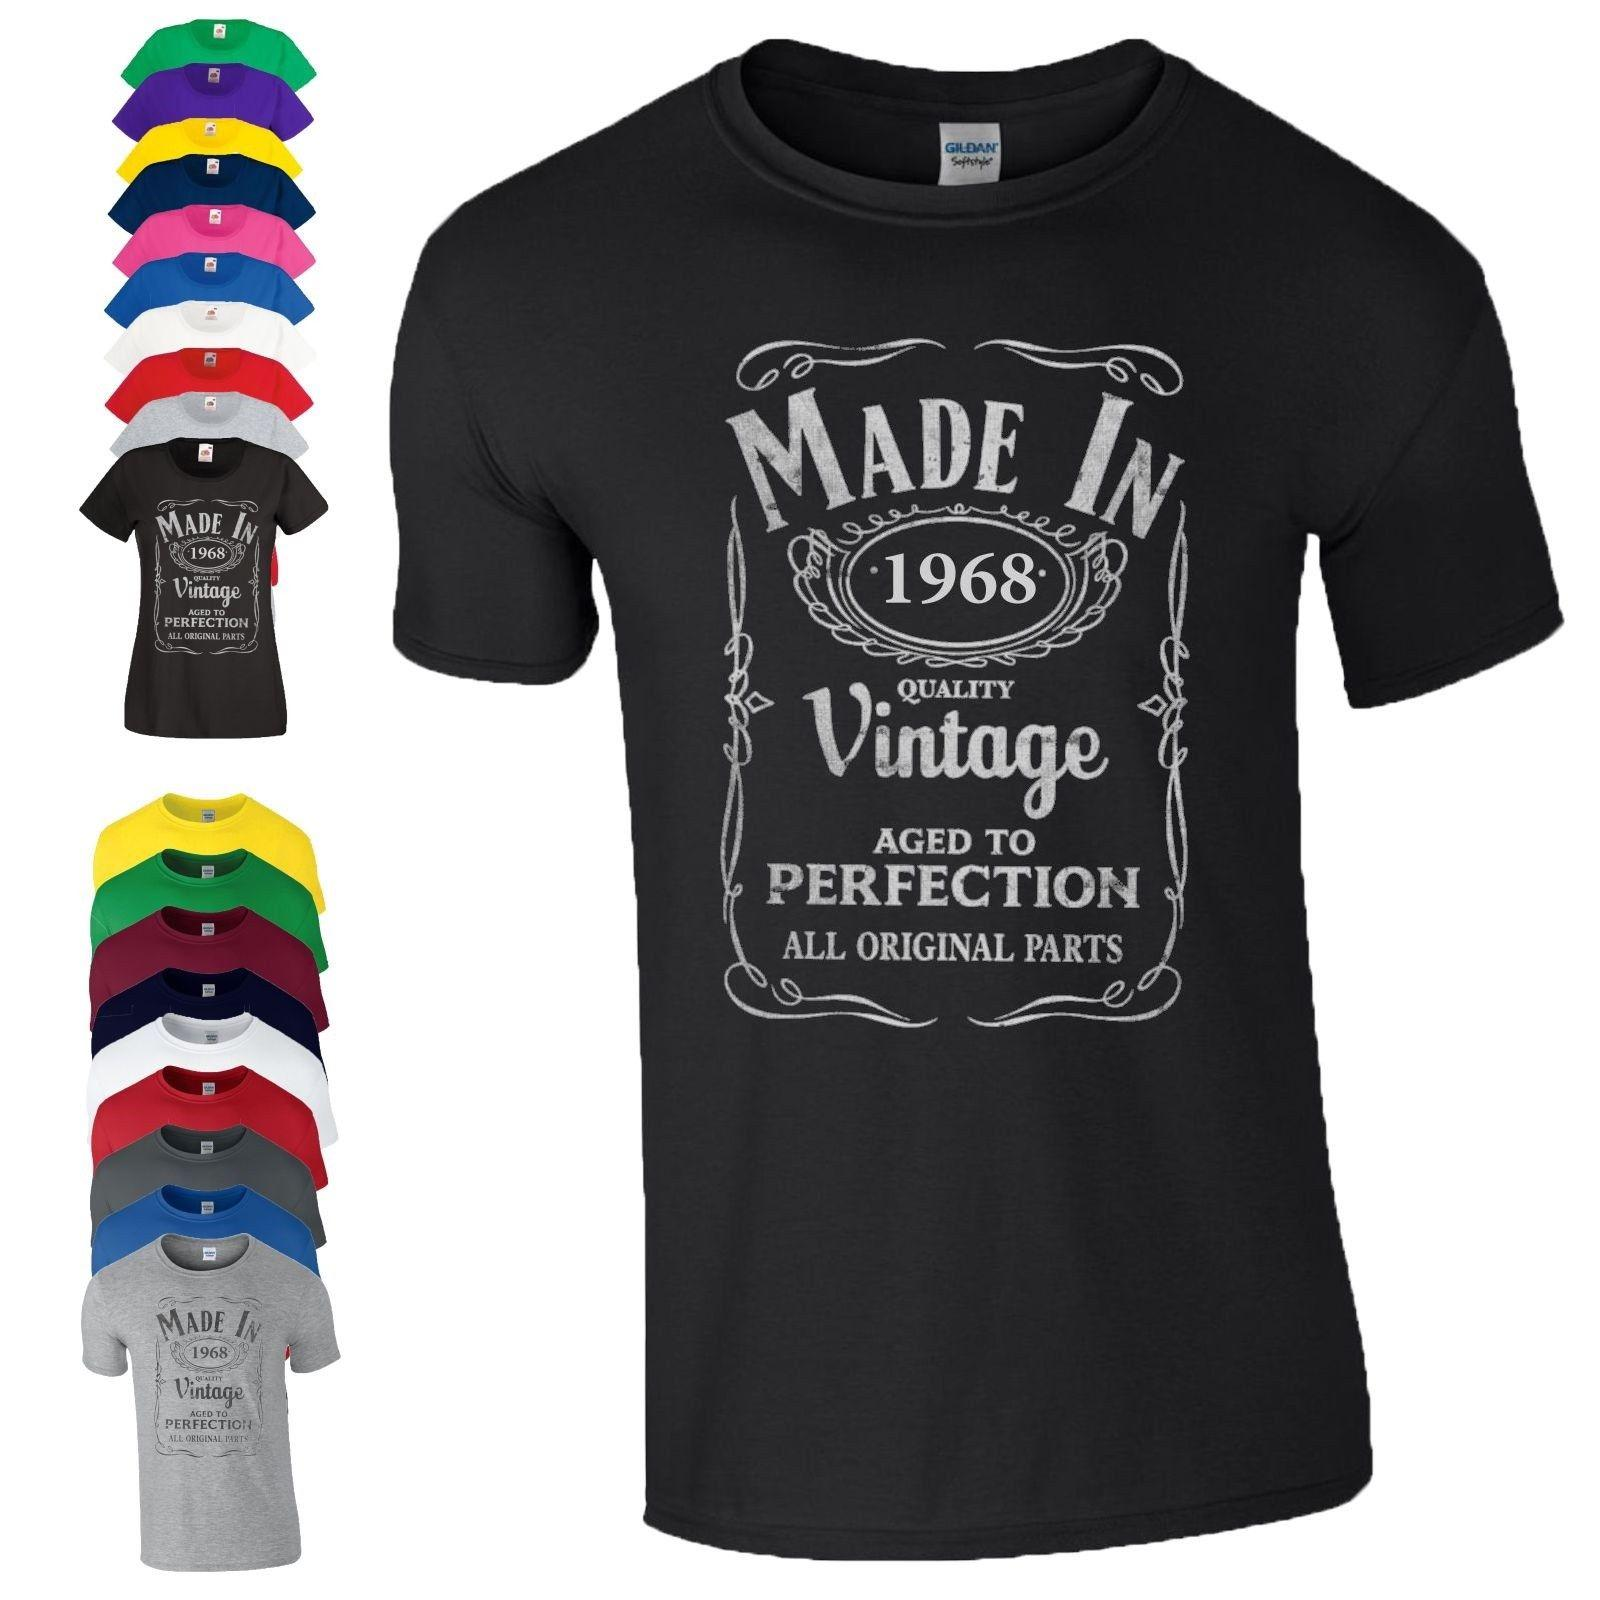 50th Birthday Gift T Shirt Made In 1968 Vintage Parts 50 Years Age Mens Ladies New High Quality Top Tee Print Summer Style Coolest Shirts Funny